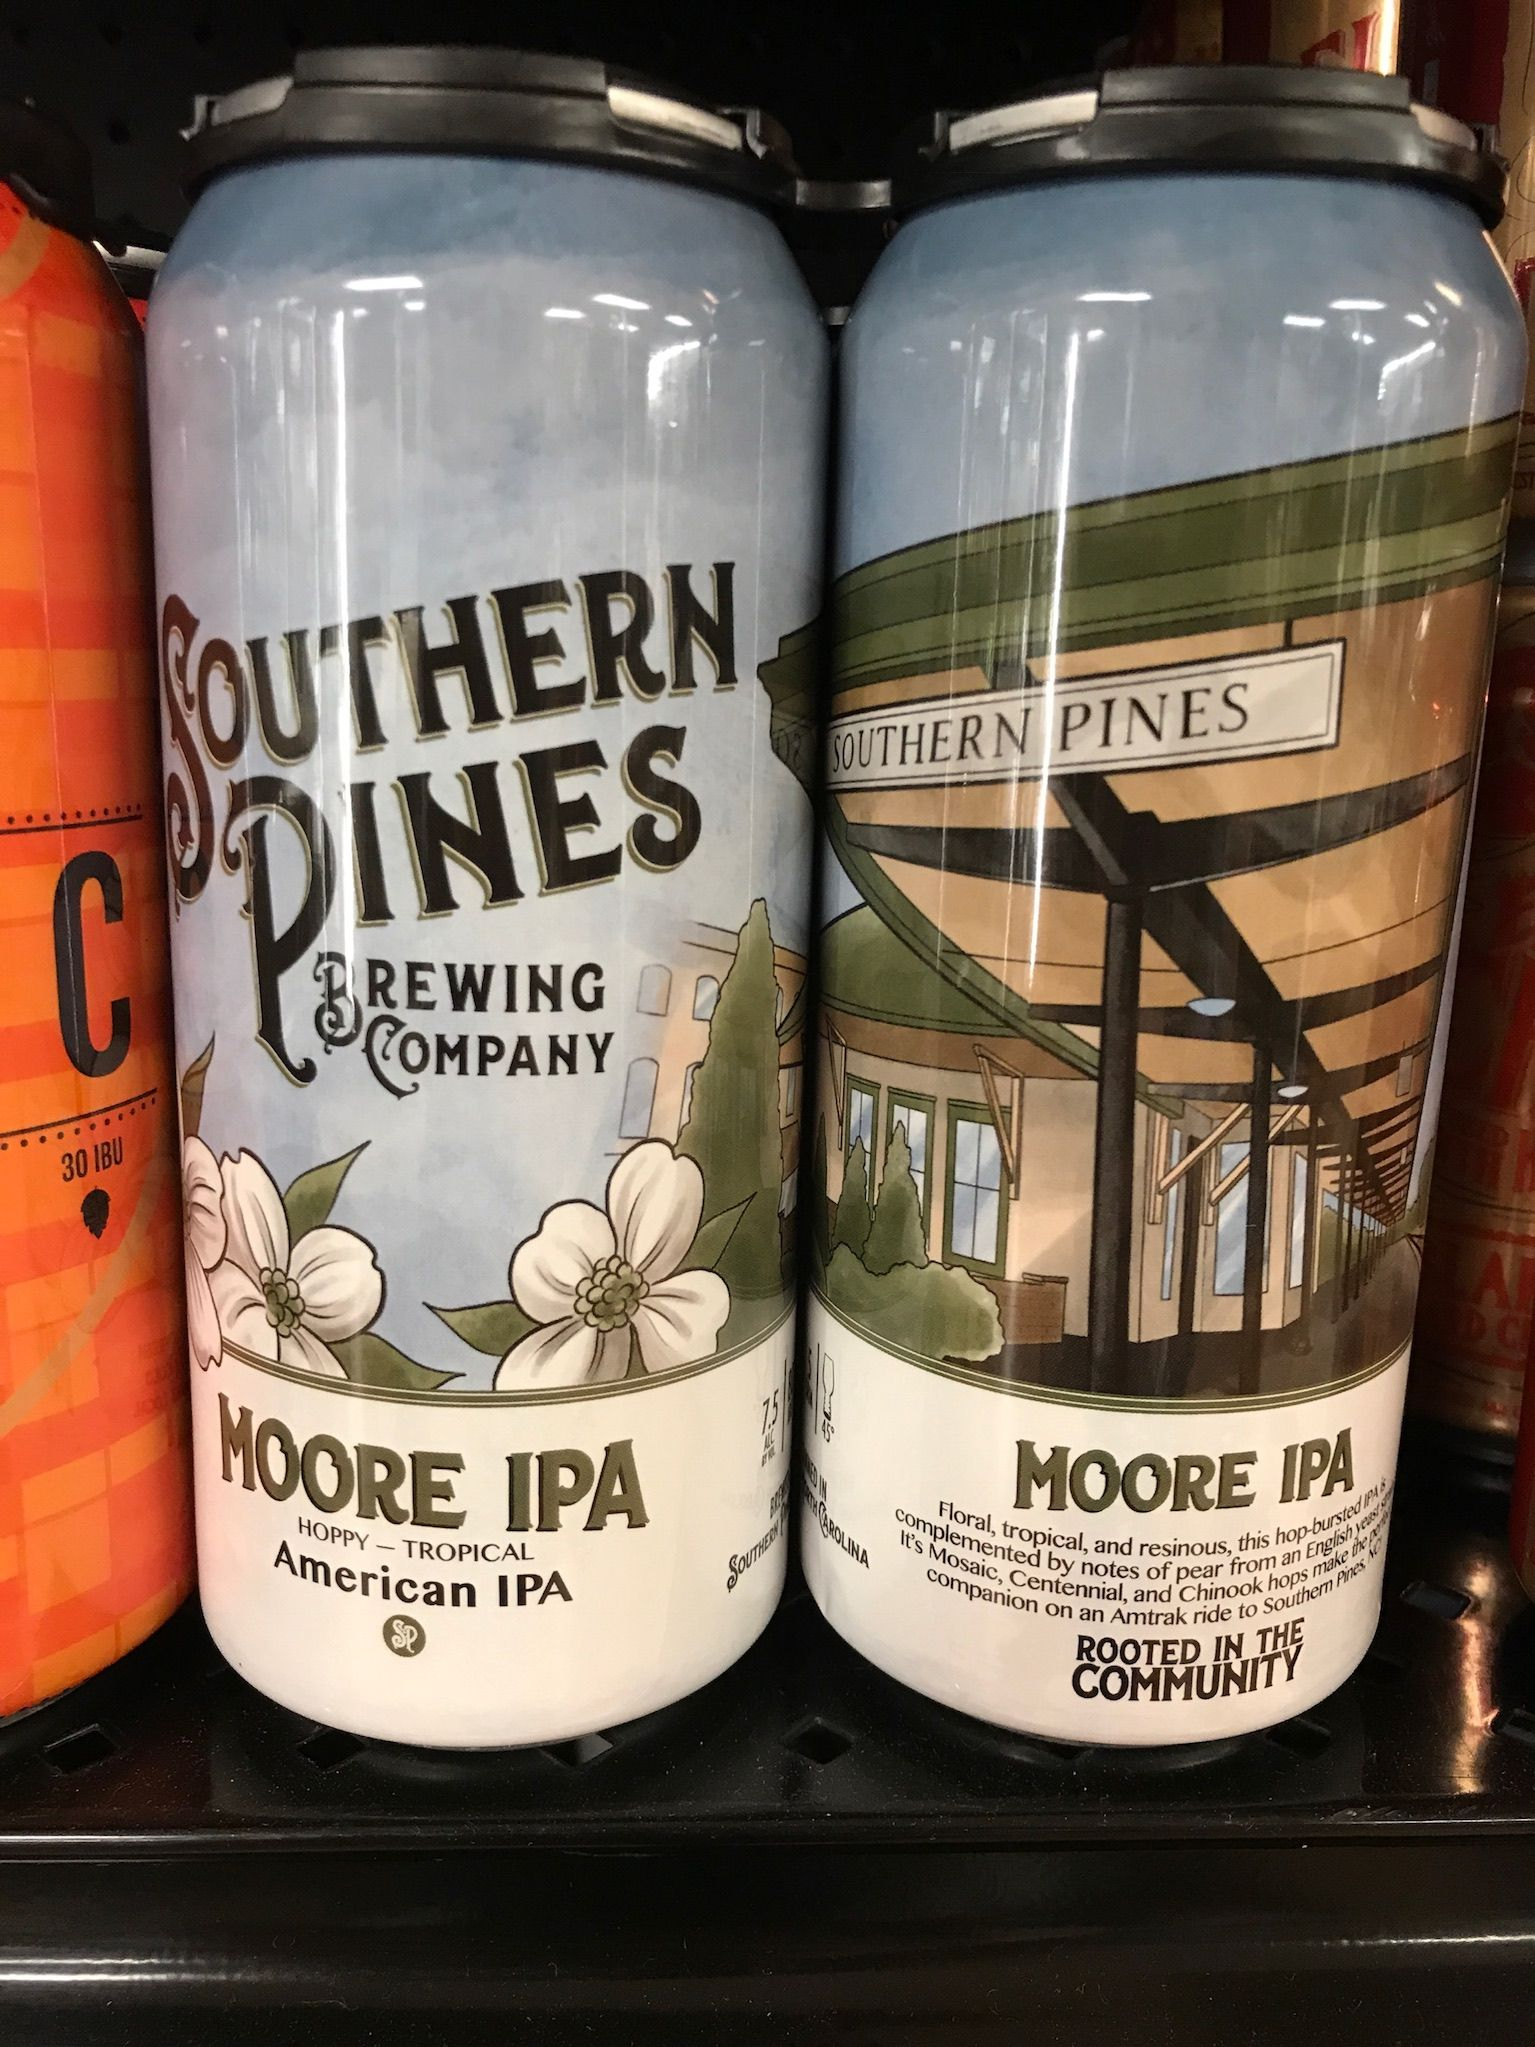 Moore Ipa From Southern Pines Brewing Co Just Arrived Southern